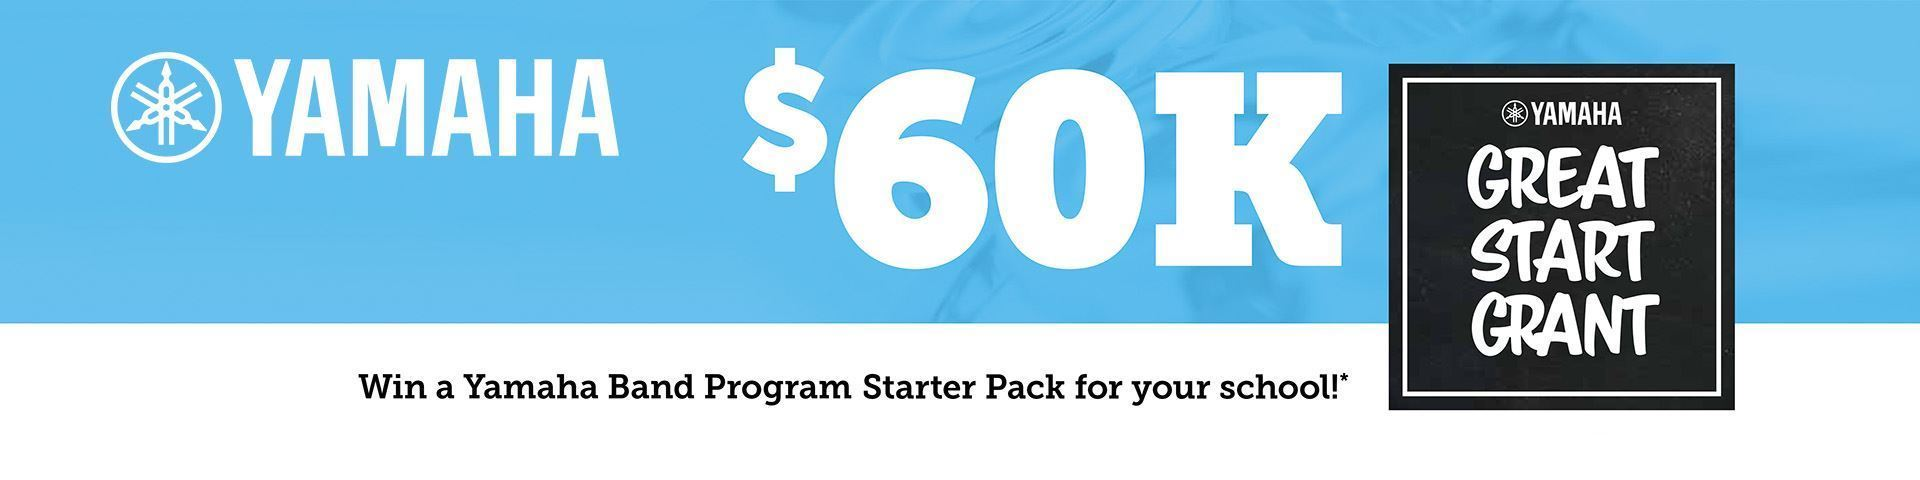 Win a $60k grant for your school with Yamaha's Off To A Great Start Program